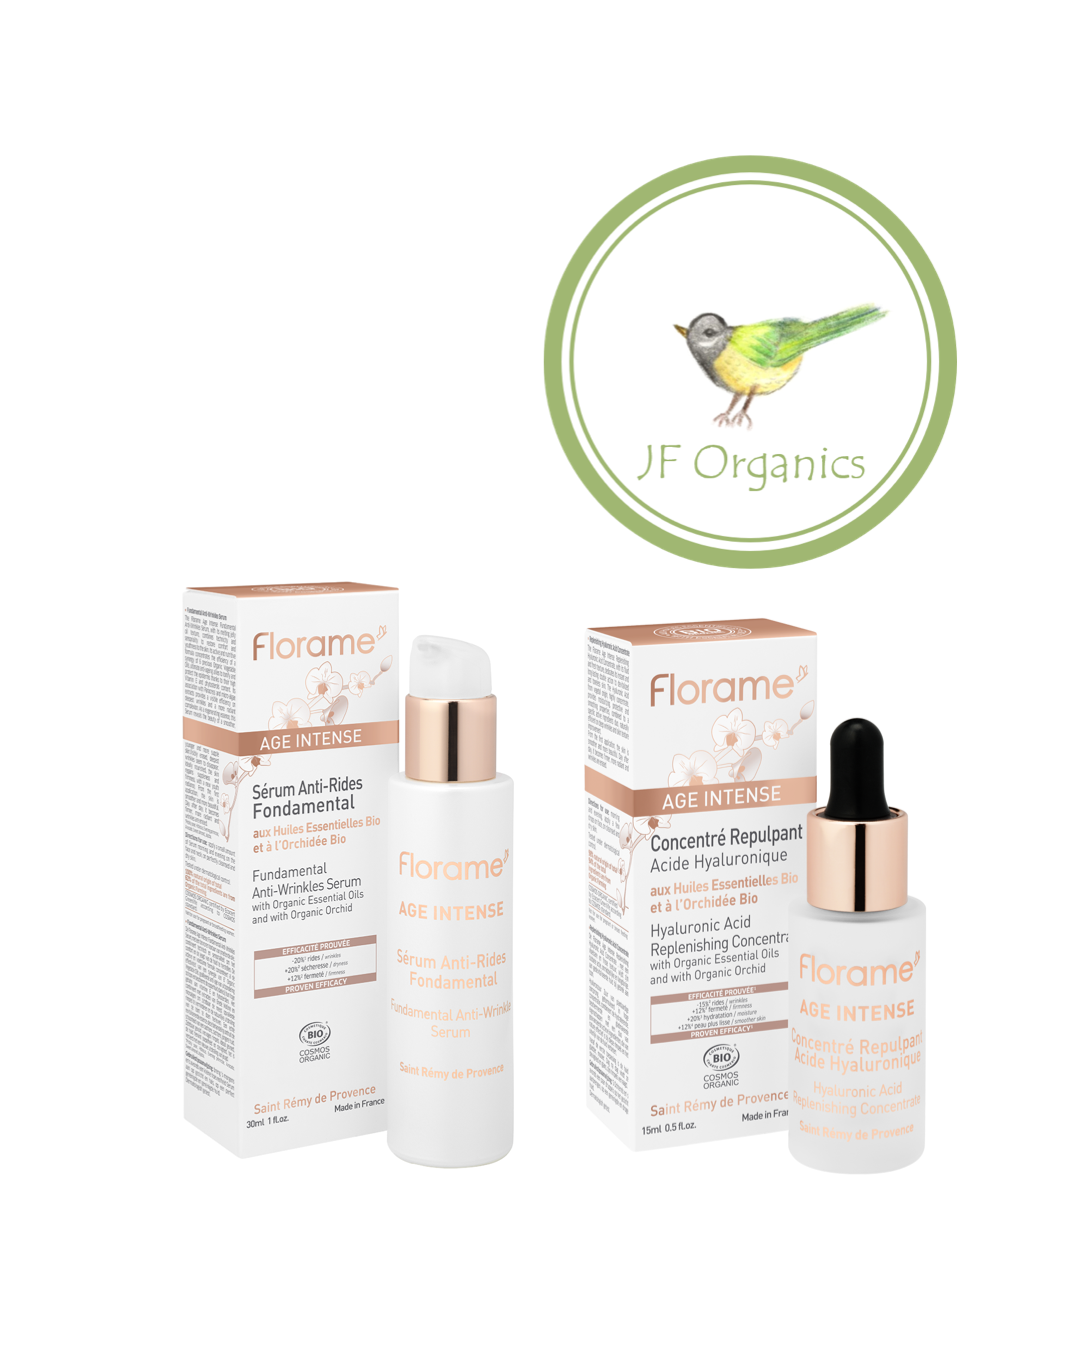 FLS08 FLORAME Anti-Wrinkle & Replenishing Set (1718) 有機蘭花幹細胞修復抗皺套裝